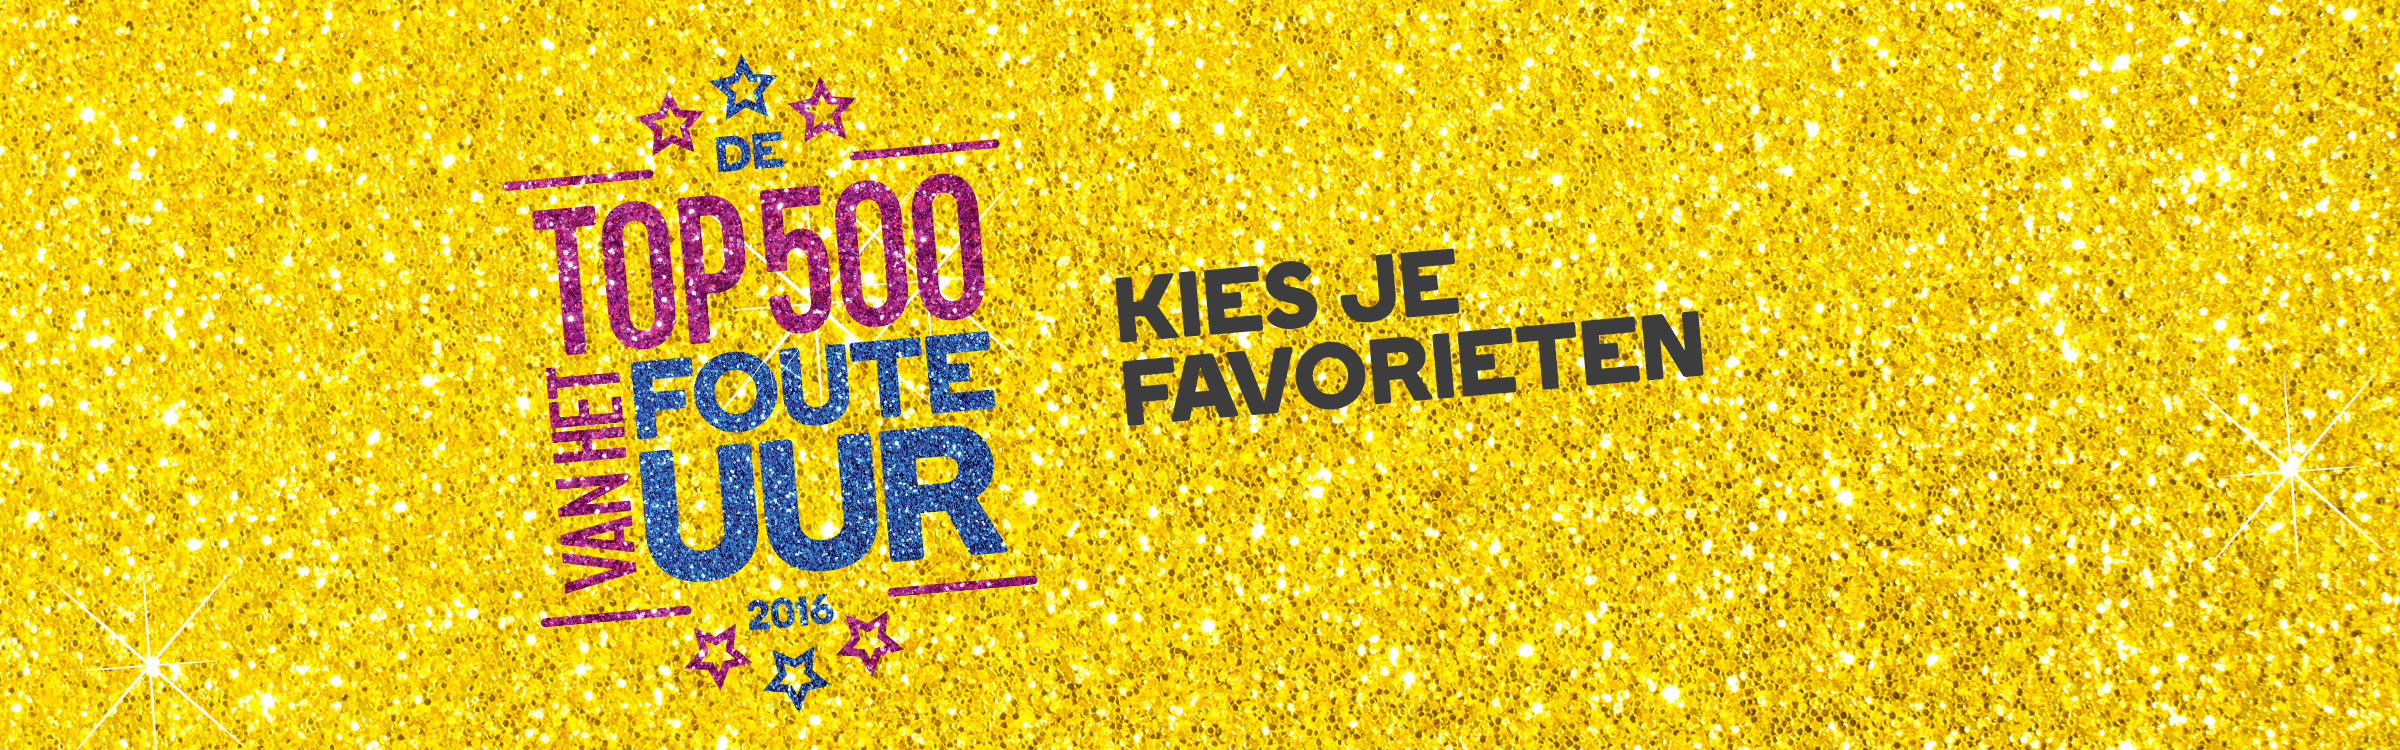 Qmusic actionheader top500fout